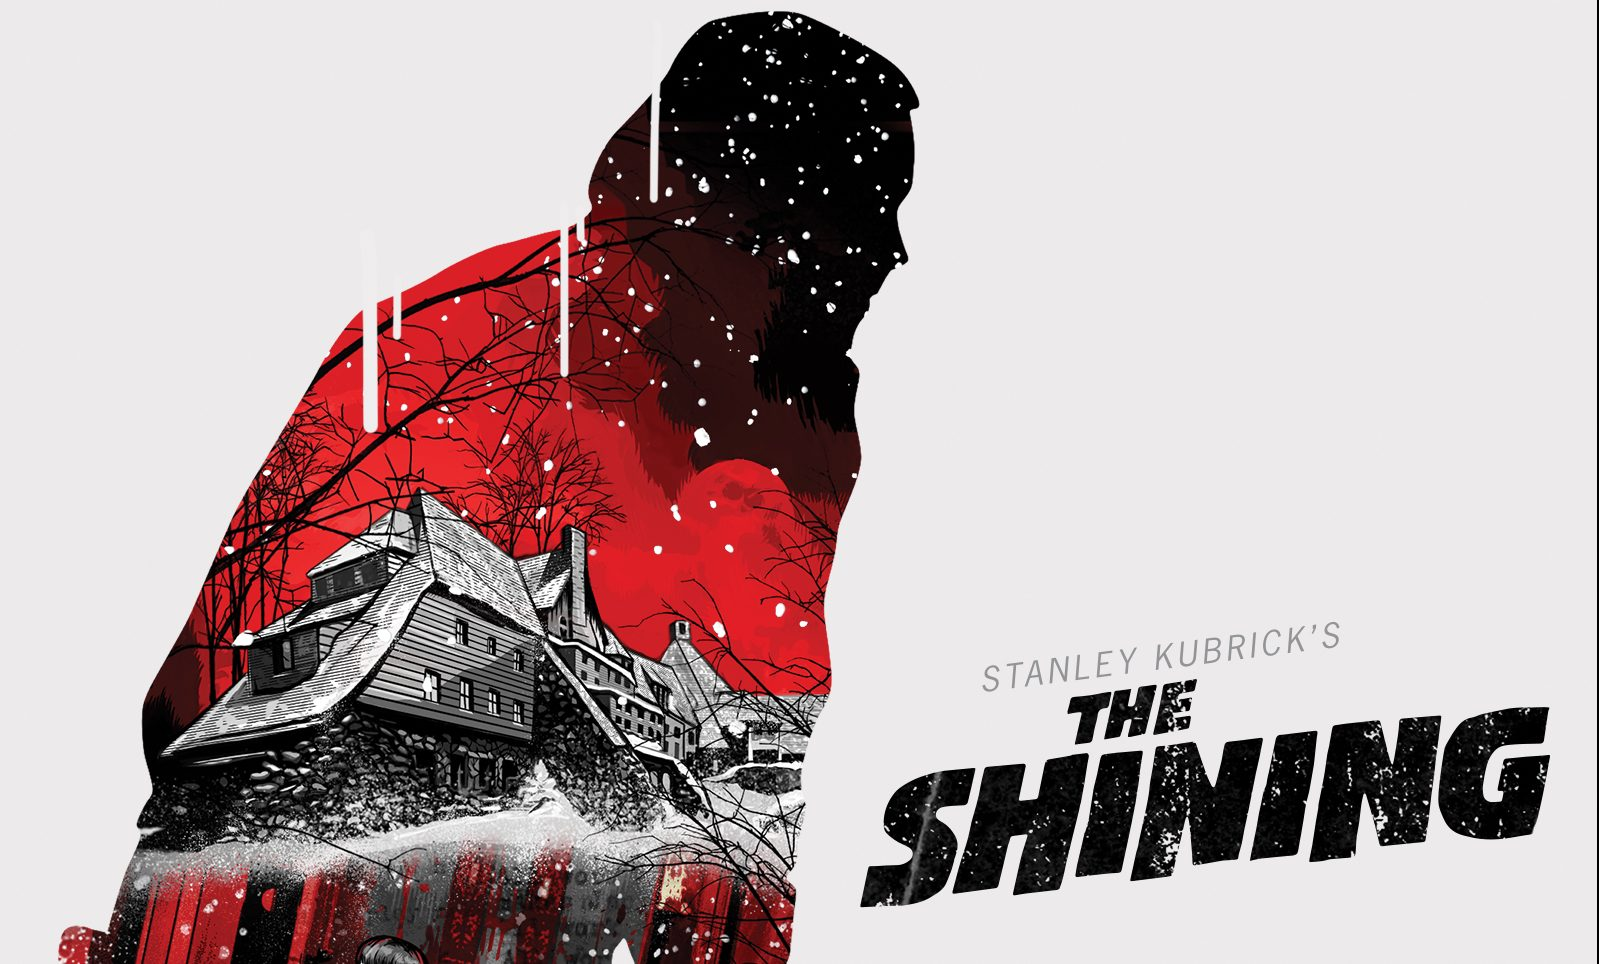 [News] Stanley Kubrick's THE SHINING Arrives on 4K This October!